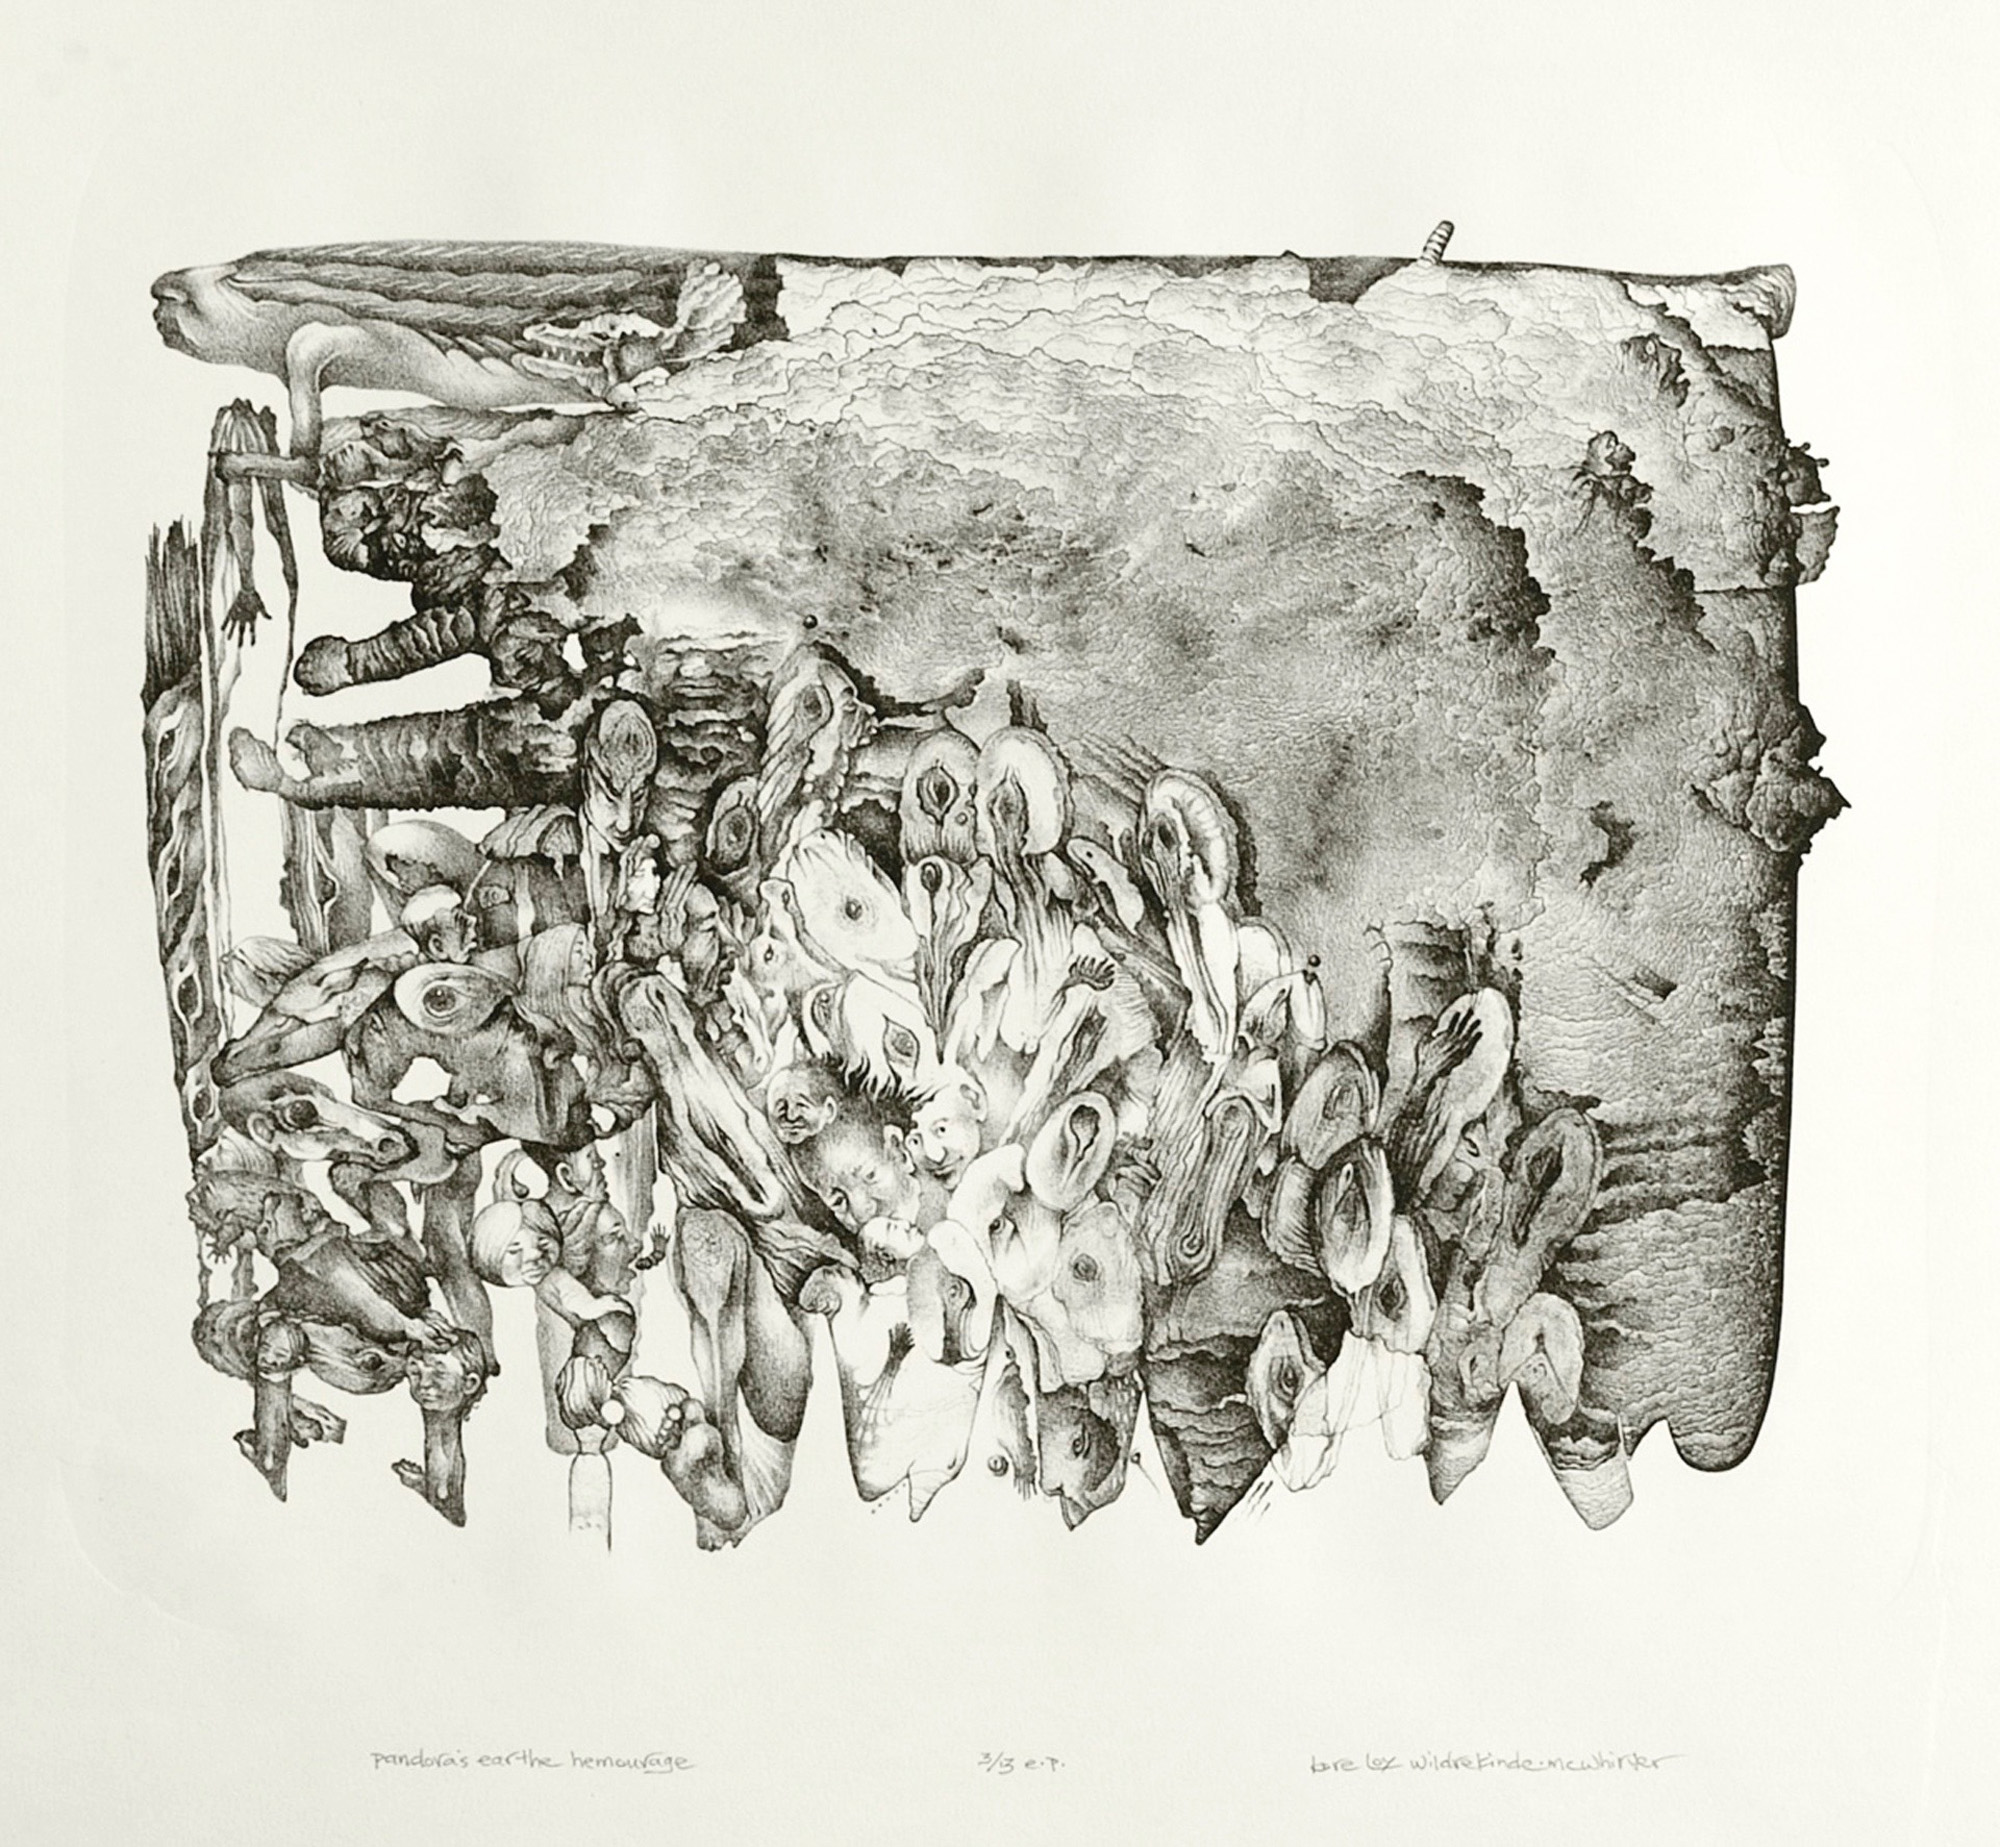 Kore Loy Wildrekinde-Mcwhirter    Pandora's Earthe Hemorrhage  stone lithograph 15 x 20 inches, APS 265G